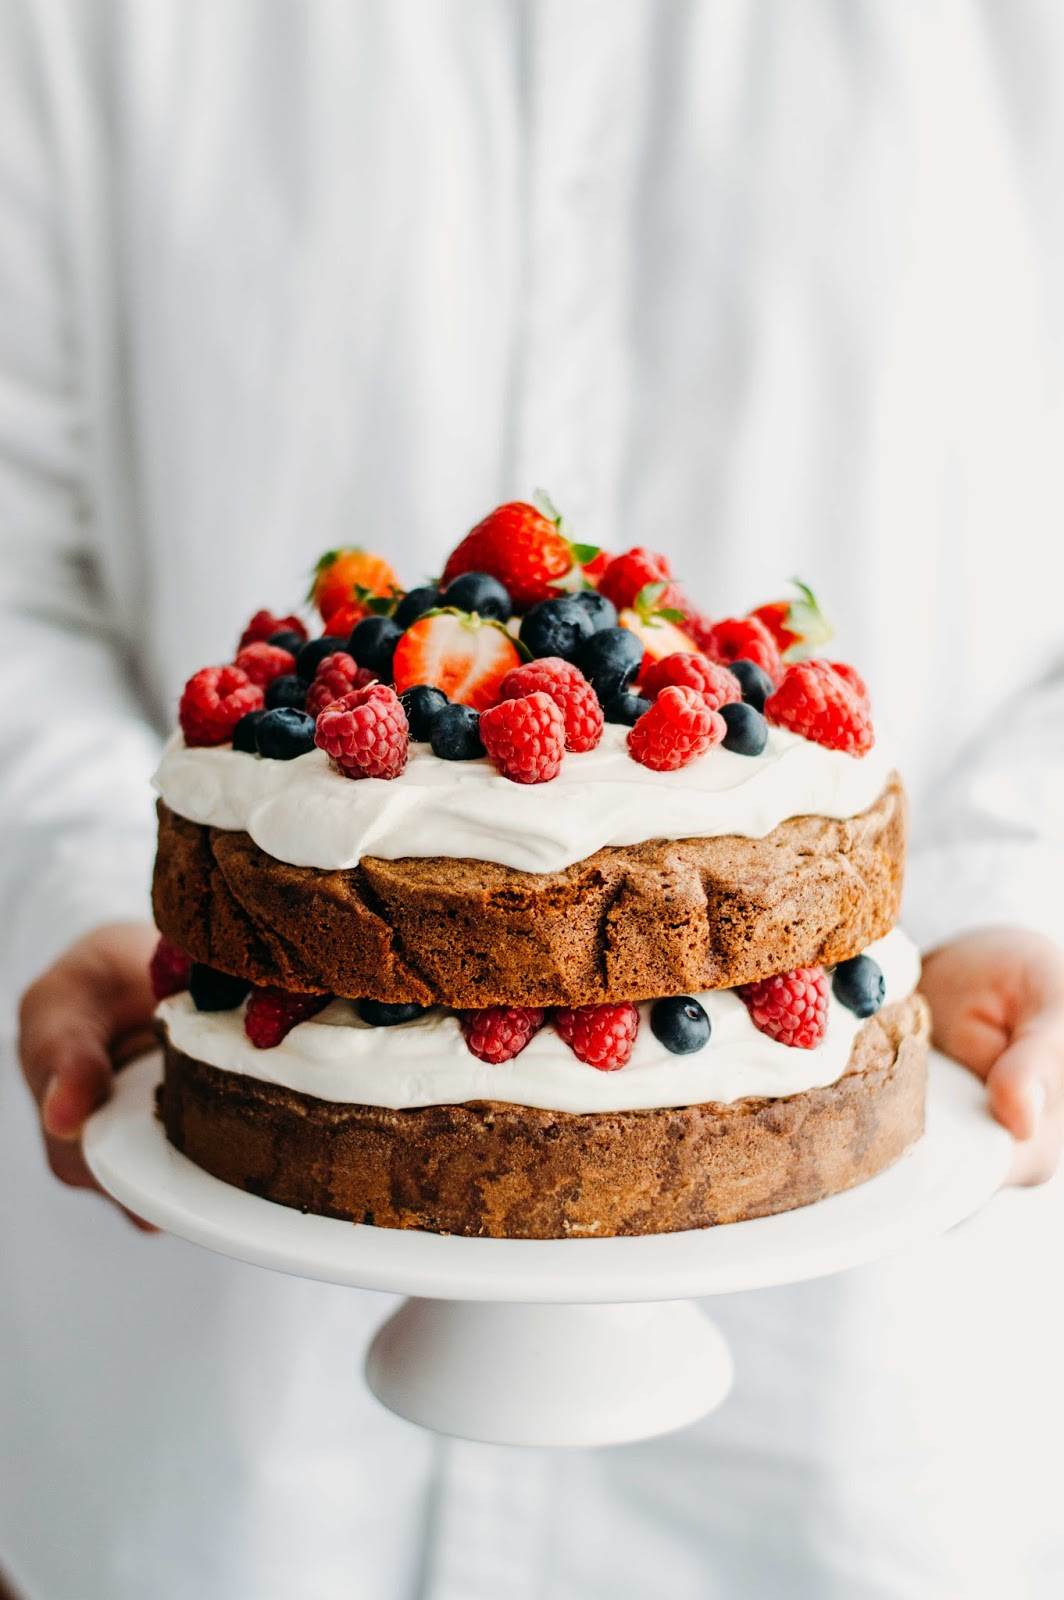 Chocolate and Cardamom Cake w/ Berries | https://oandrajos.blogspot.com